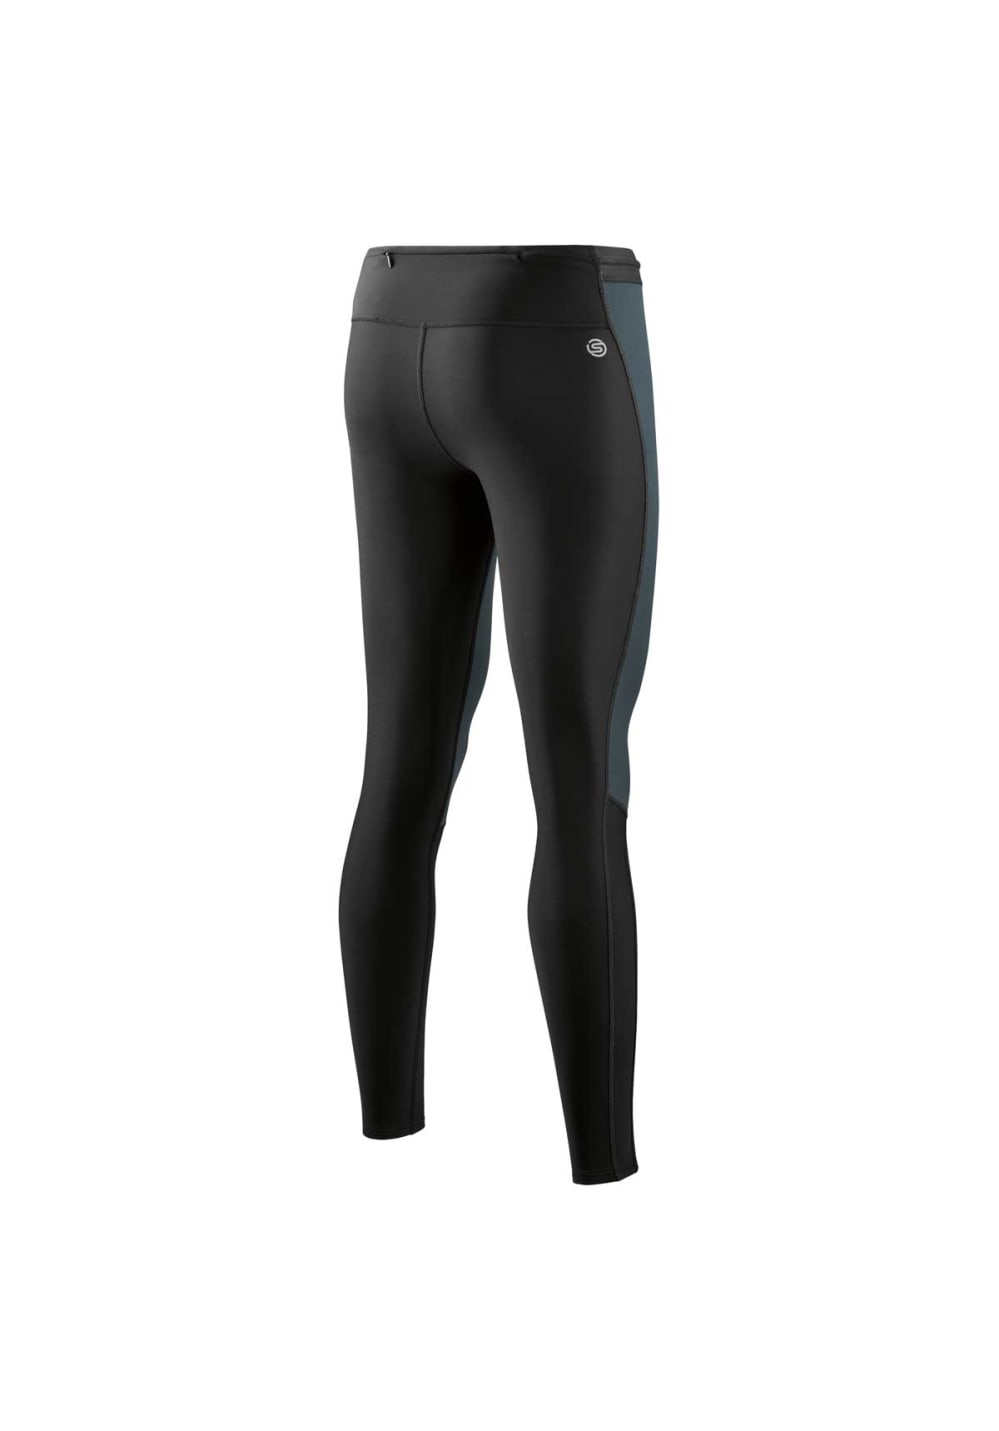 e29aa07925e61 Skins Dnamic Thermal-windproof Long Tights - Running trousers for ...